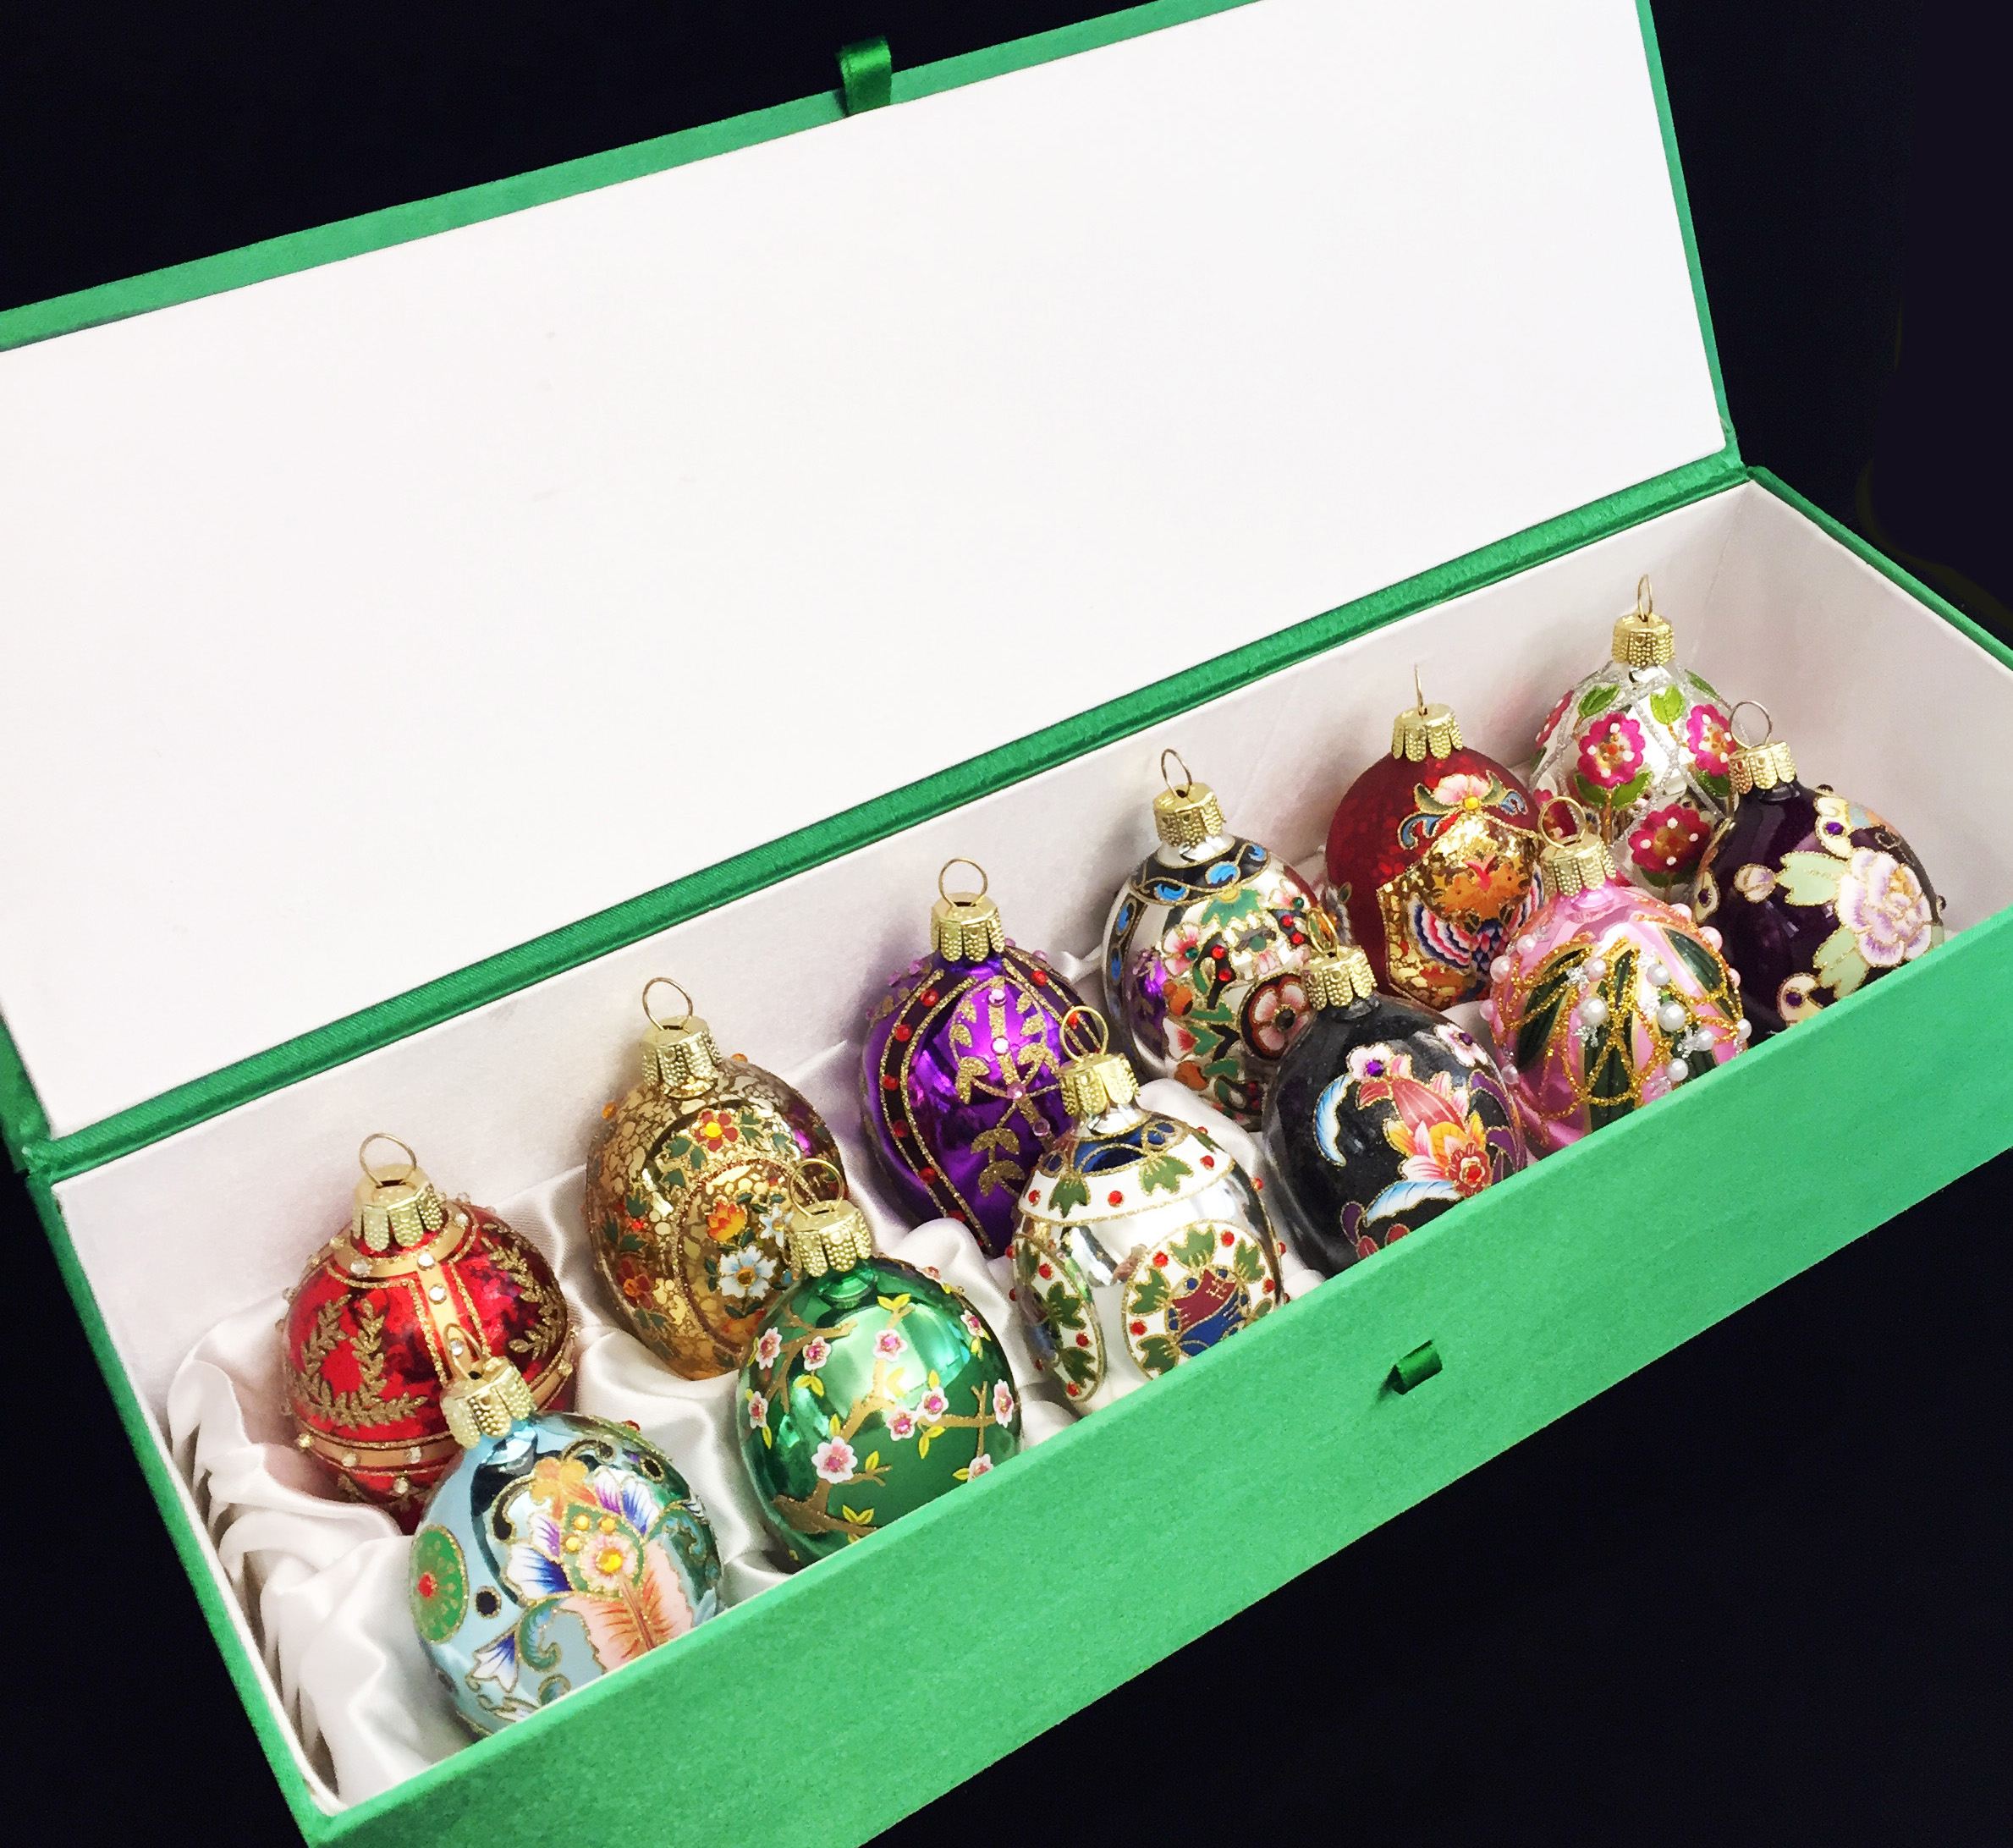 THE NEW 2016 JOAN RIVERS HOLIDAY ORNAMENTS Blogs amp Forums : originalvv2amppx 1 from community.qvc.com size 2379 x 2184 jpeg 1232kB